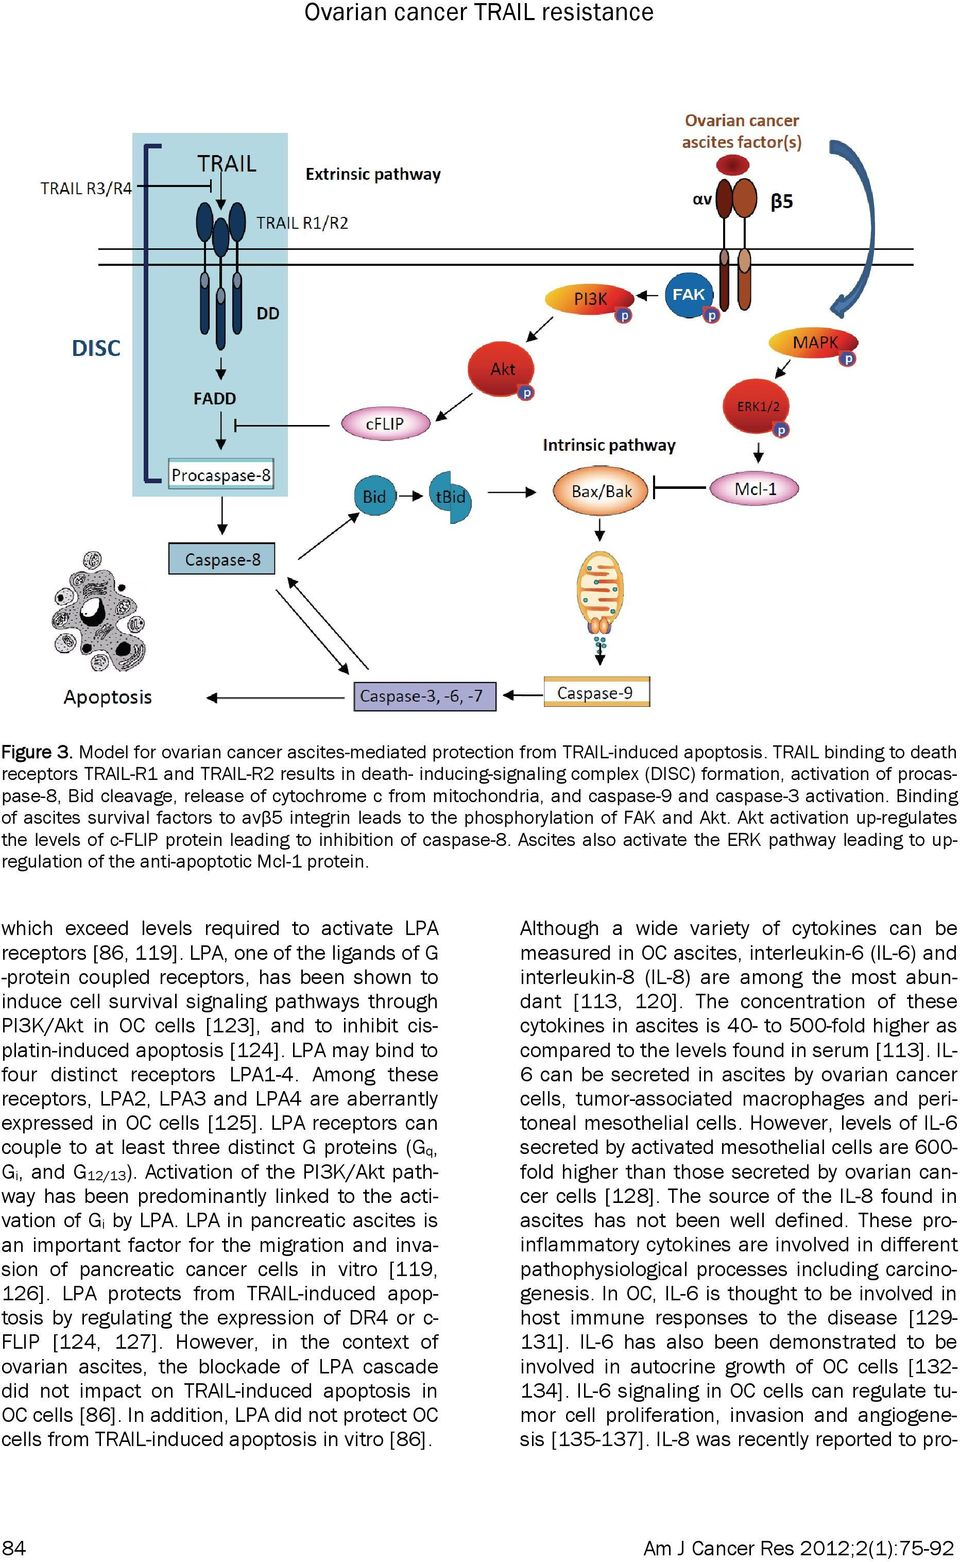 mitochondria, and caspase-9 and caspase-3 activation. Binding of ascites survival factors to avβ5 integrin leads to the phosphorylation of FAK and Akt.